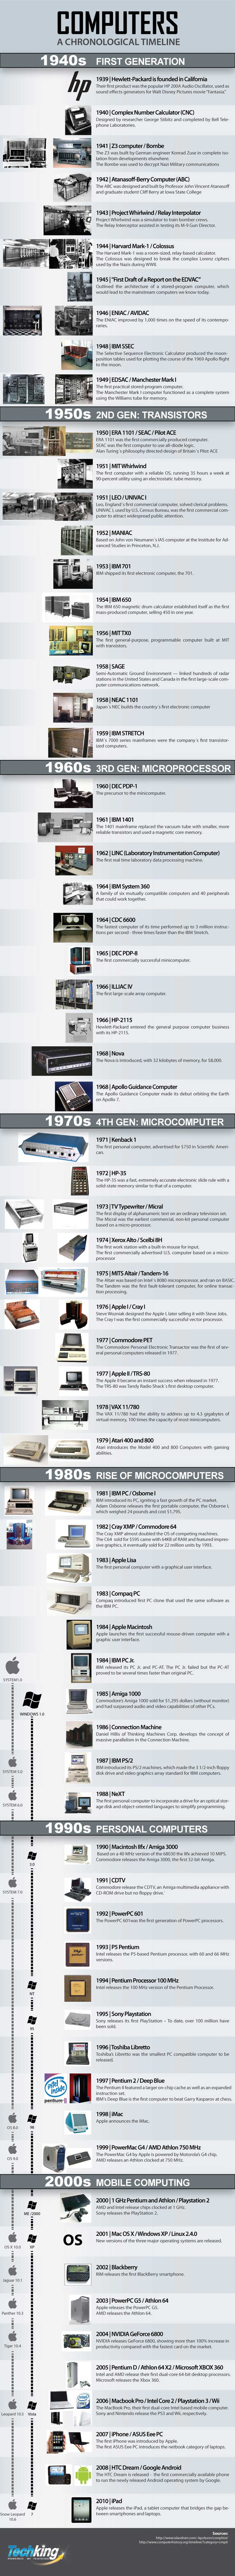 Computers: An Awesome Chronological Timeline [Infographic]